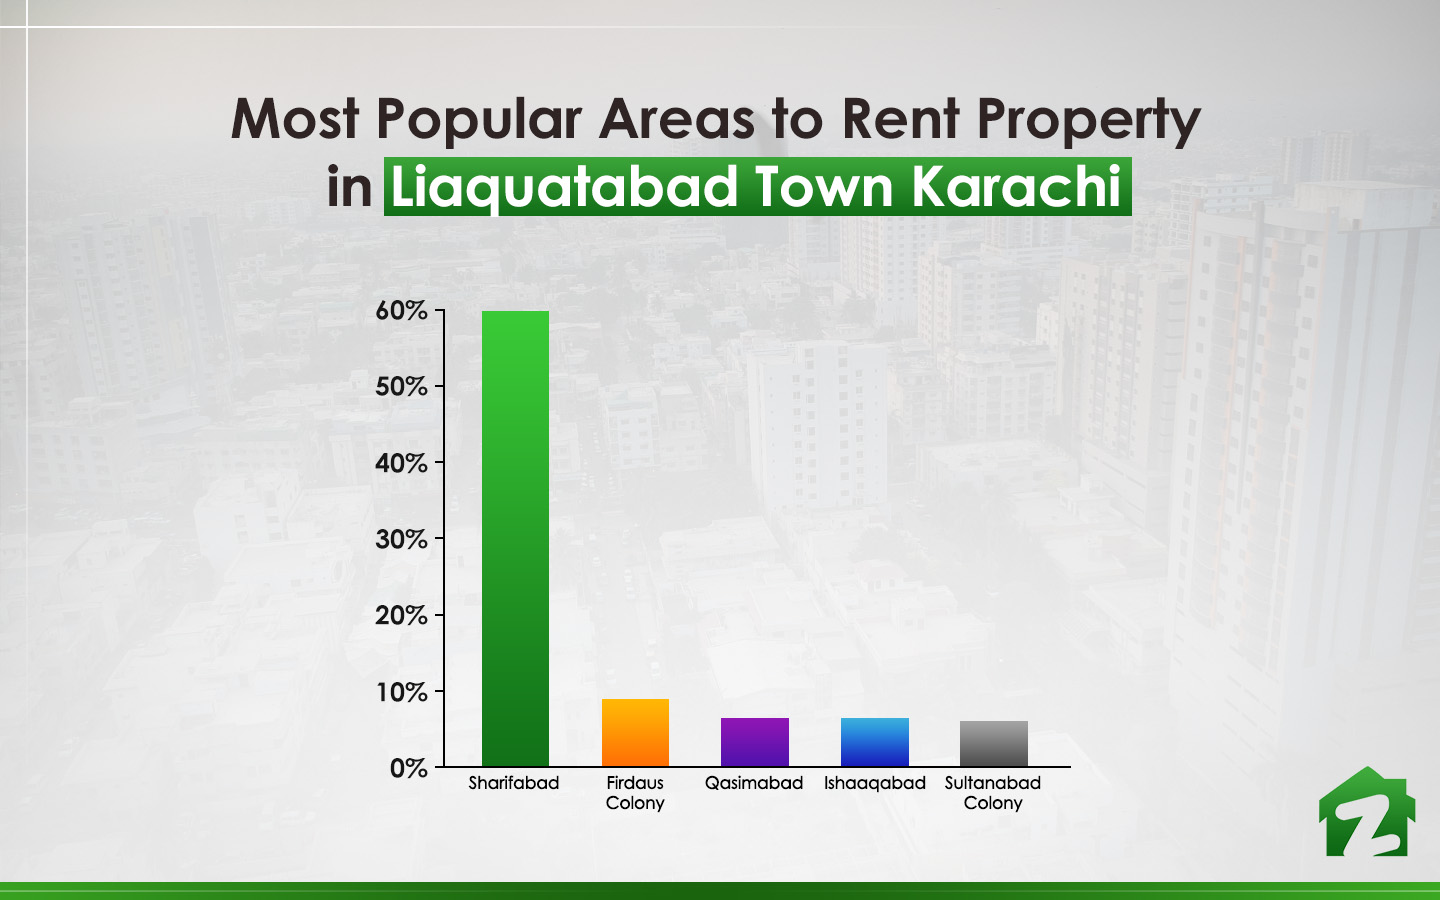 Five most popular areas to rent in Liaquatabad Town Karachi